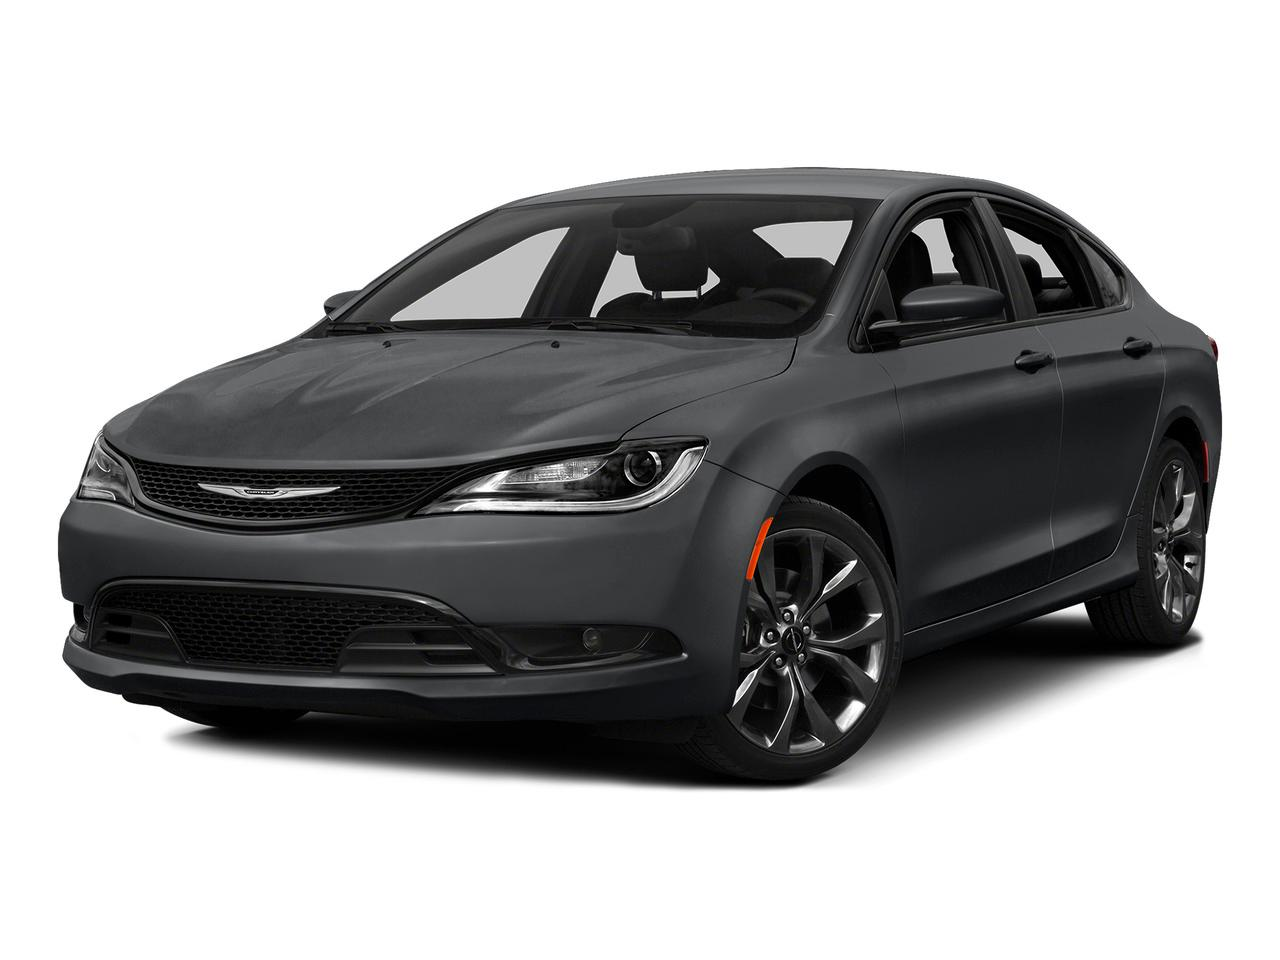 2015 Chrysler 200 Vehicle Photo in Medina, OH 44256